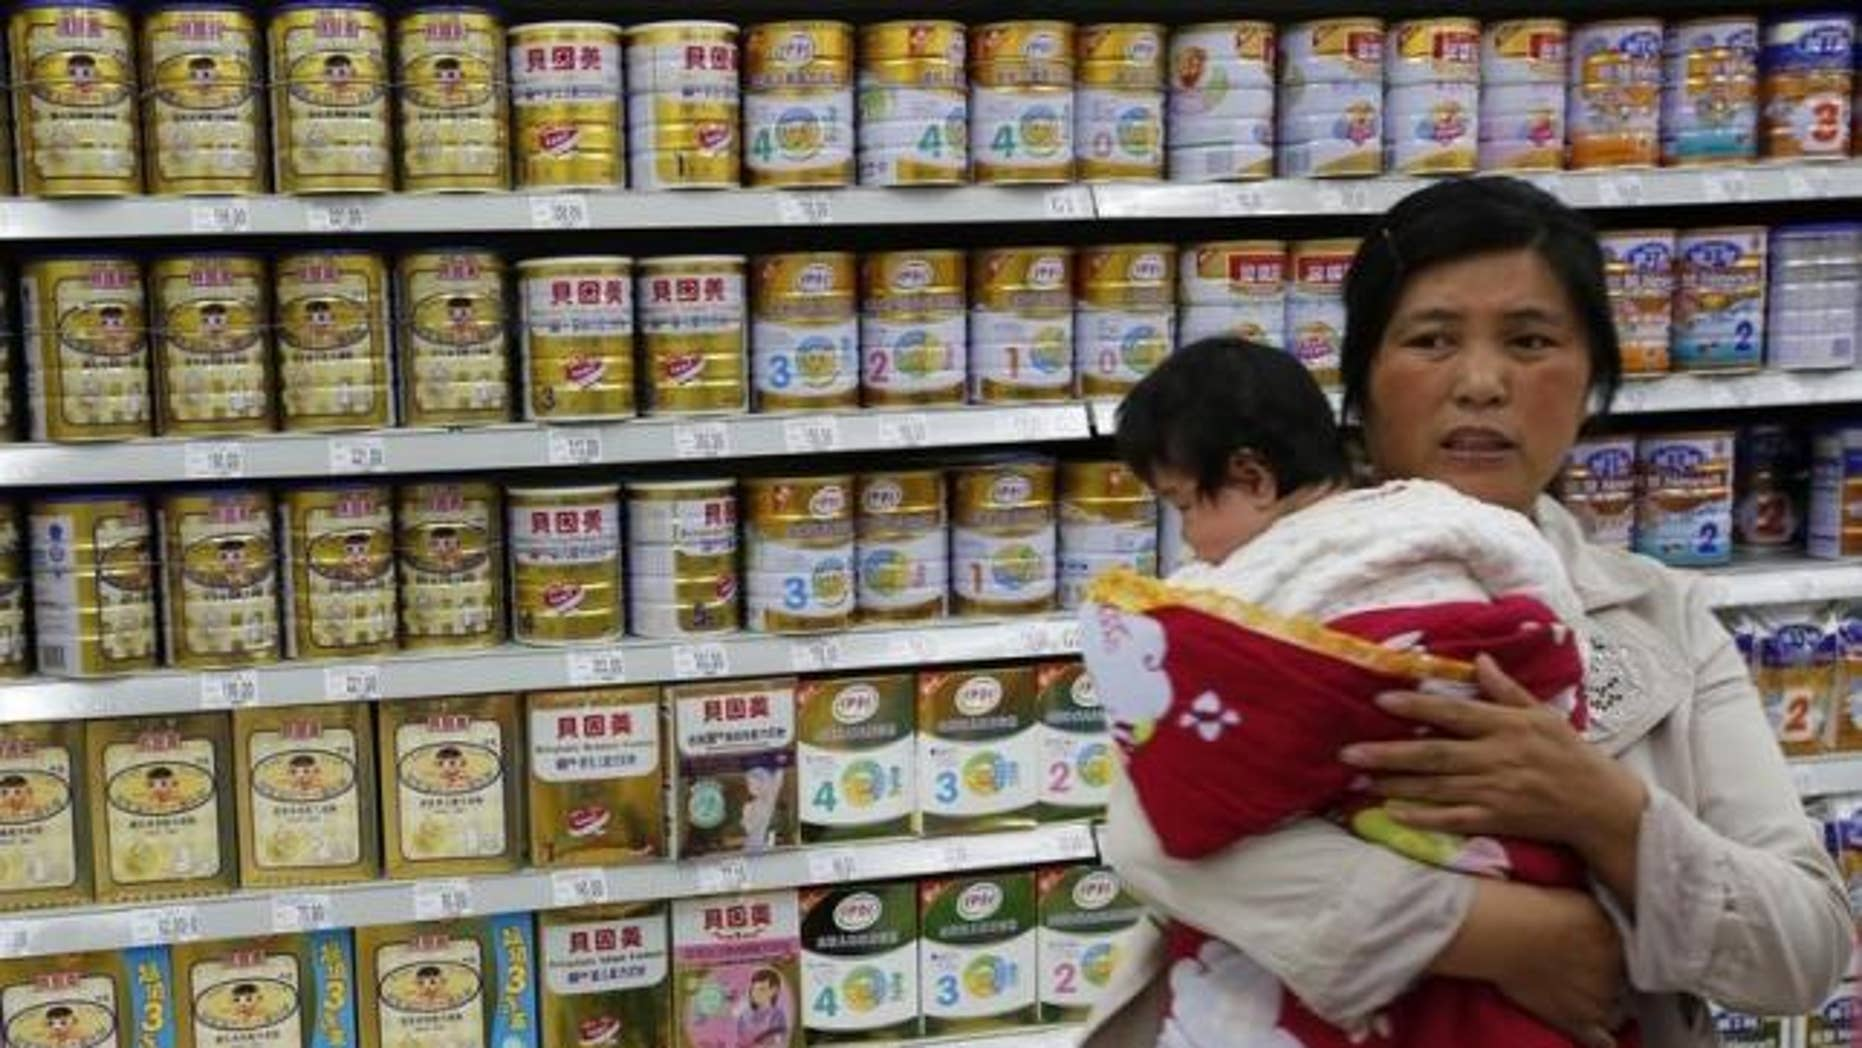 May 20, 2013: A woman holding a baby stands in front of a shelf displaying milk powder products at a supermarket in Beijing.